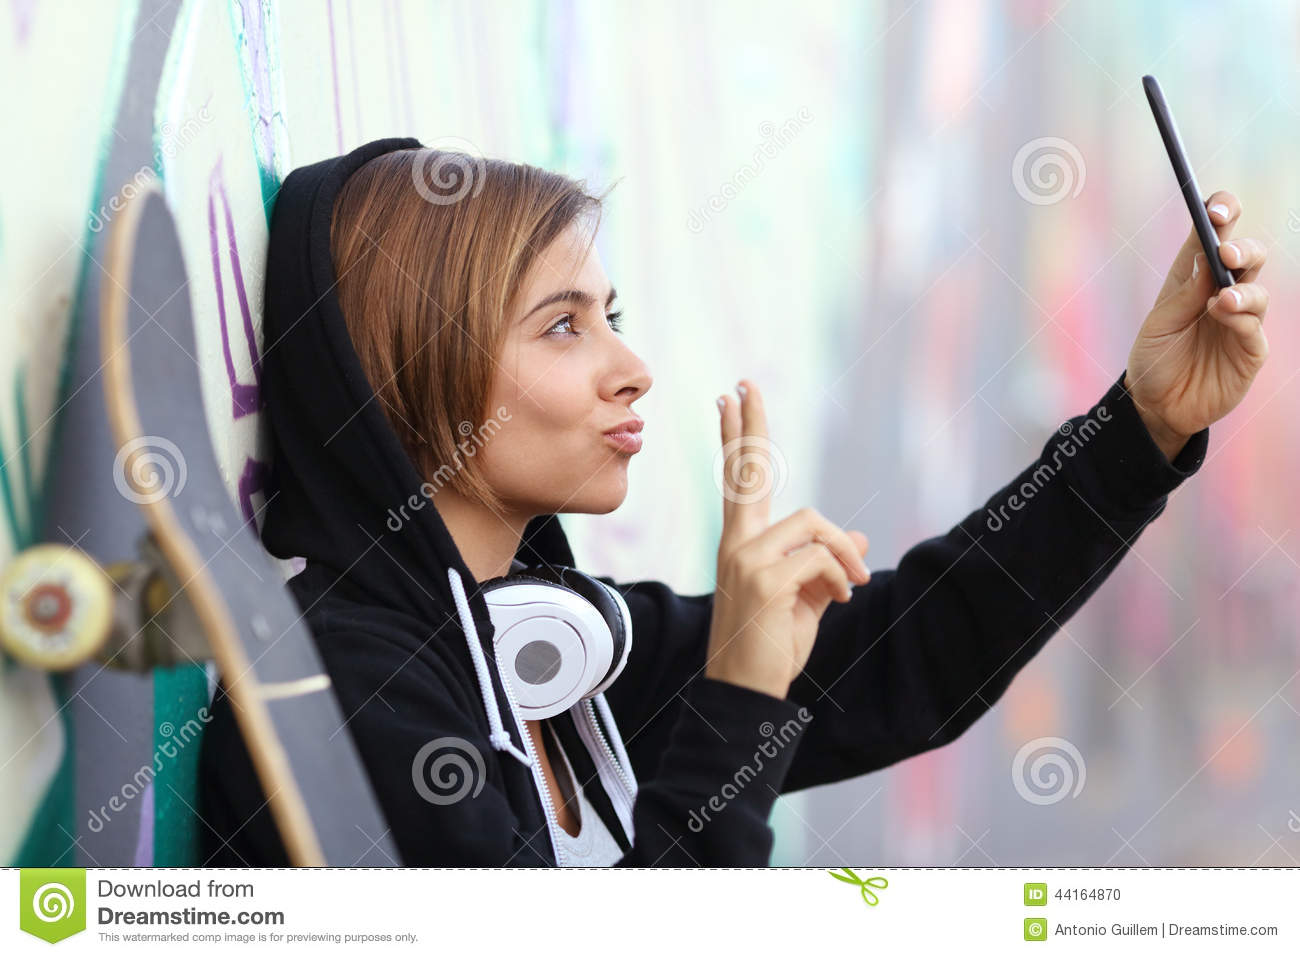 Download Skater Teenager Girl Taking A Photograph With Smart Phone Camera Stock Photo - Image of network, cell: 44164870